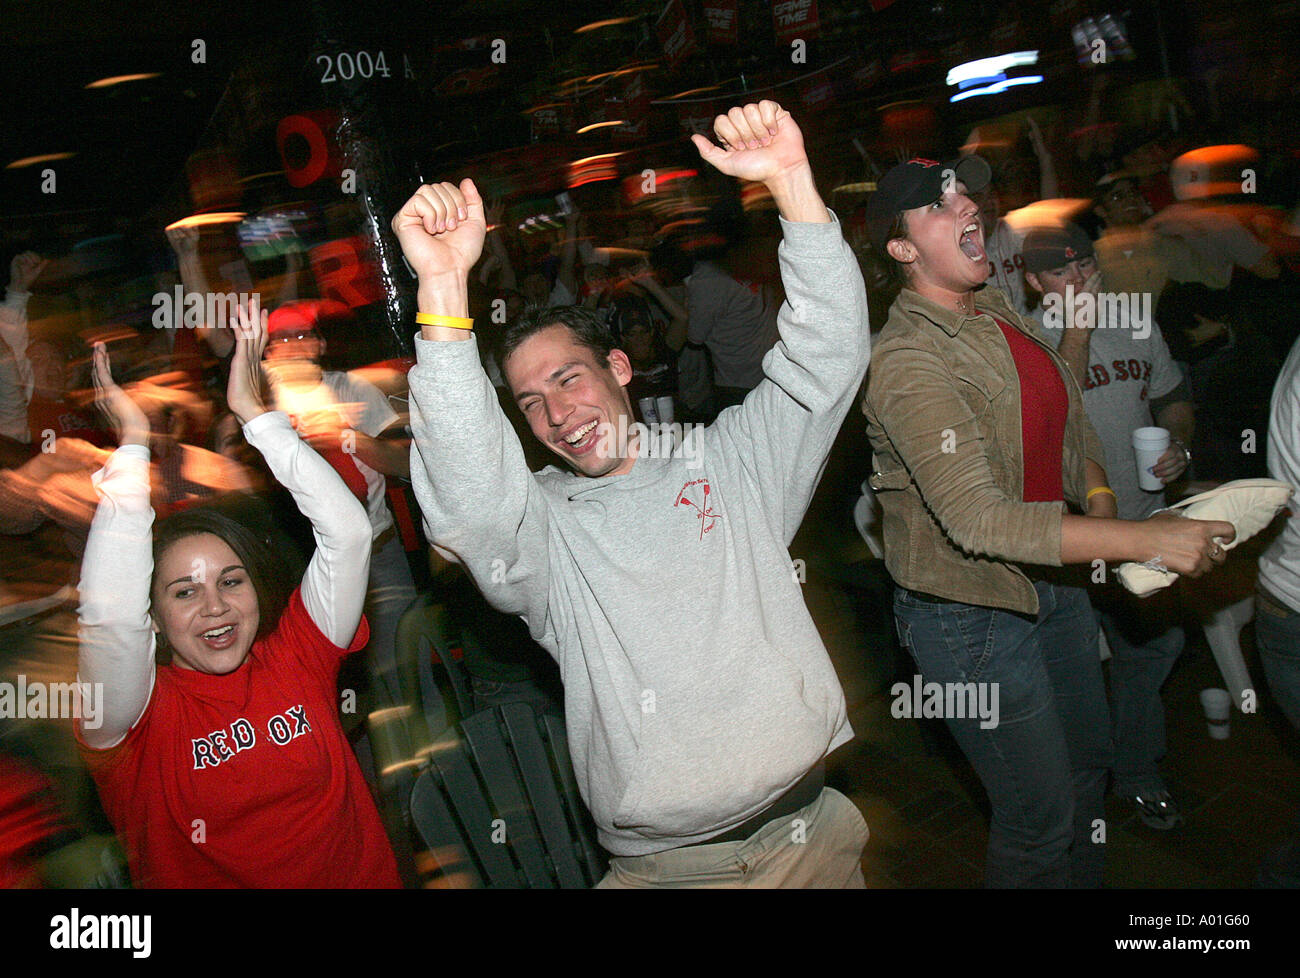 Rowdy Red Sox baseball fans celebrate a win - Stock Image